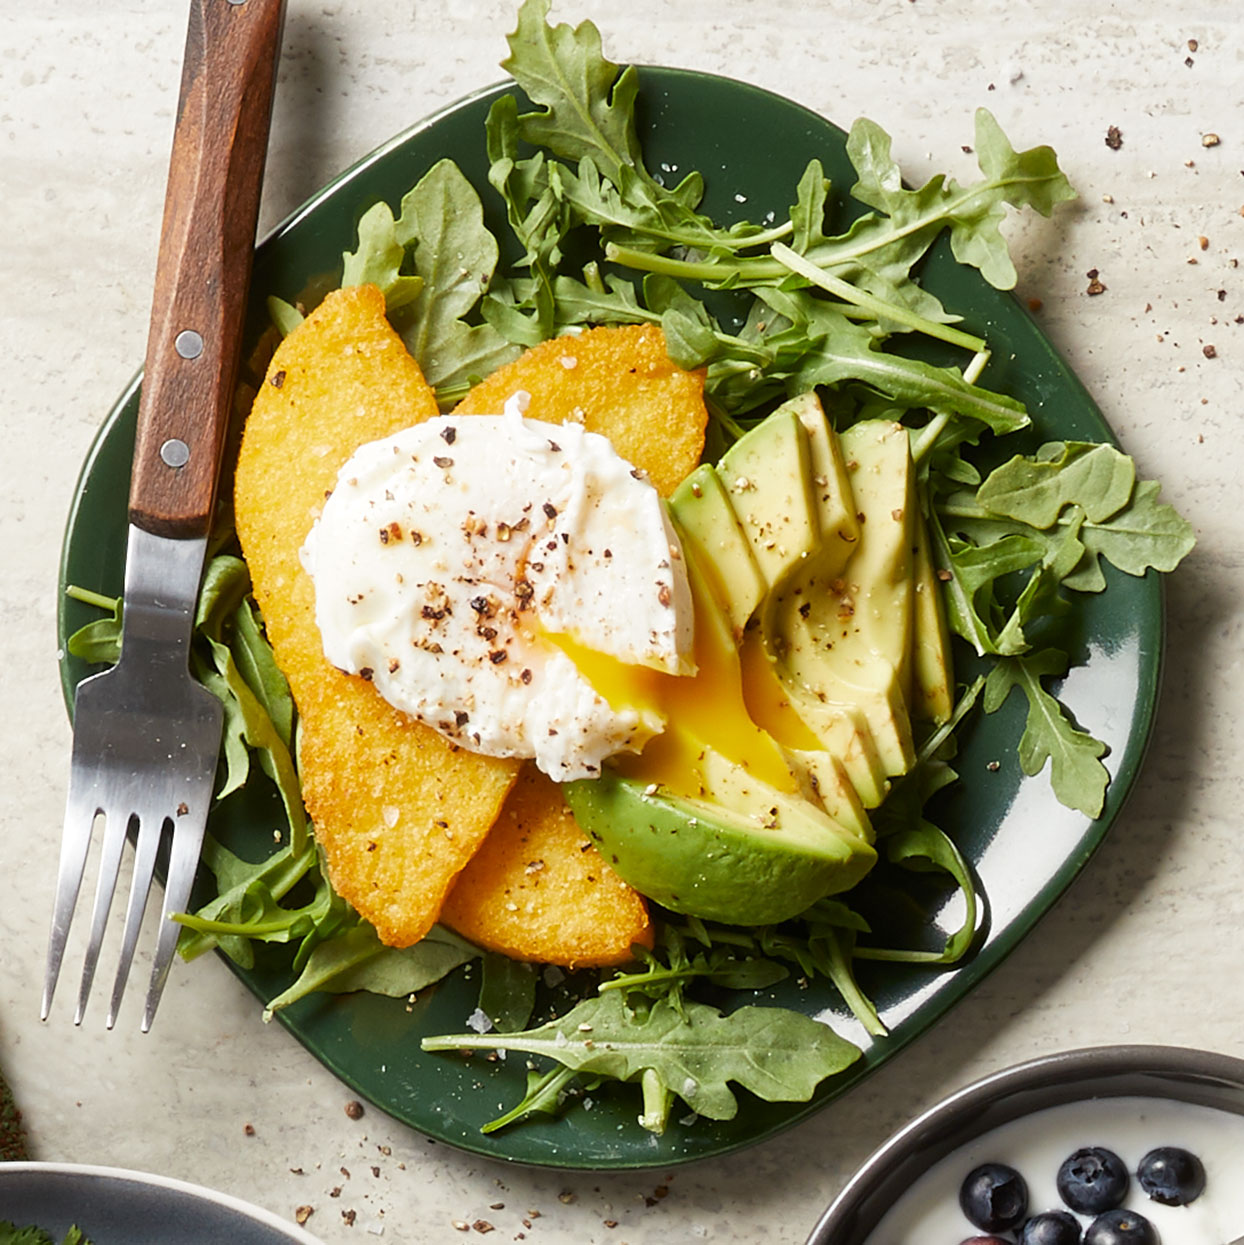 Precooked polenta makes this savory healthy breakfast a breeze. Serving the easy poached eggs on a bed of arugula is a wonderful way to get a head start on your daily vegetable intake. Source: Diabetic Living Magazine, Winter 2020